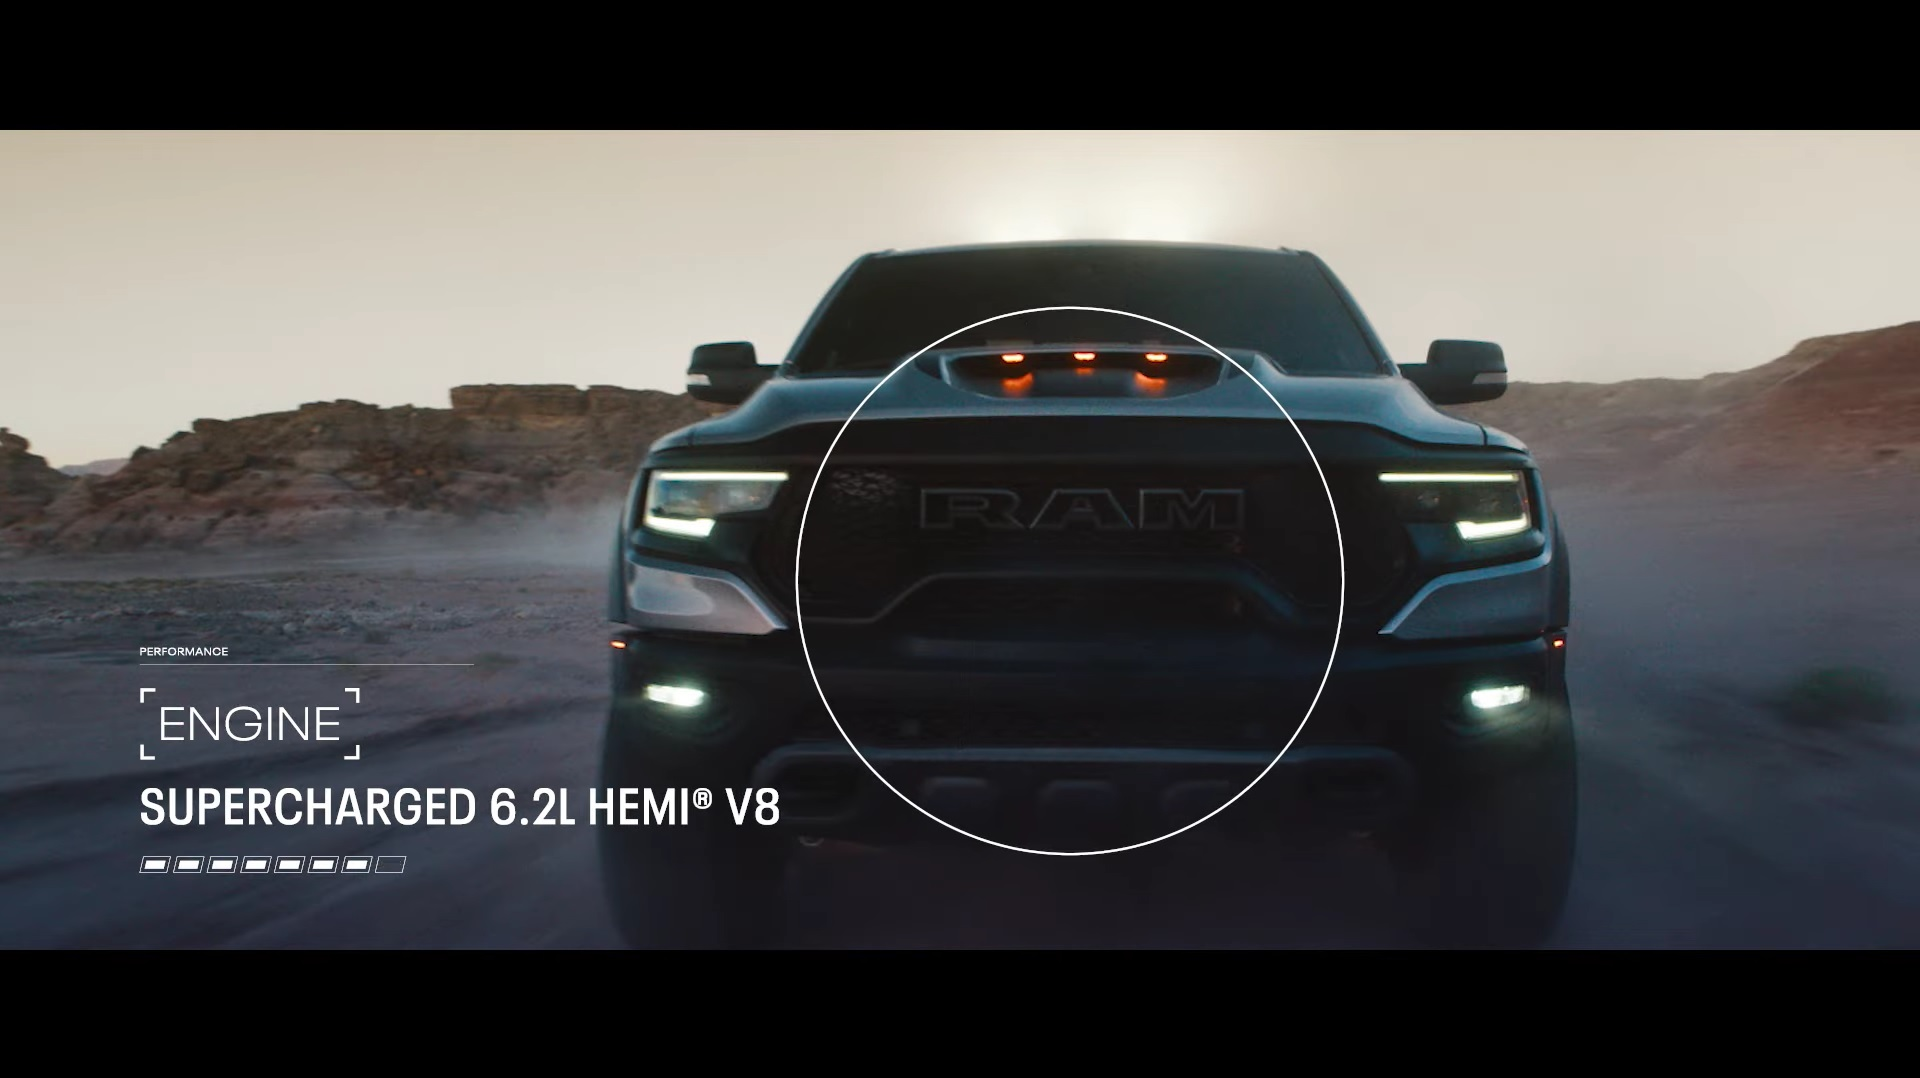 New Ford F-150 Raptor revealed - the original high-performance pickup reimagined